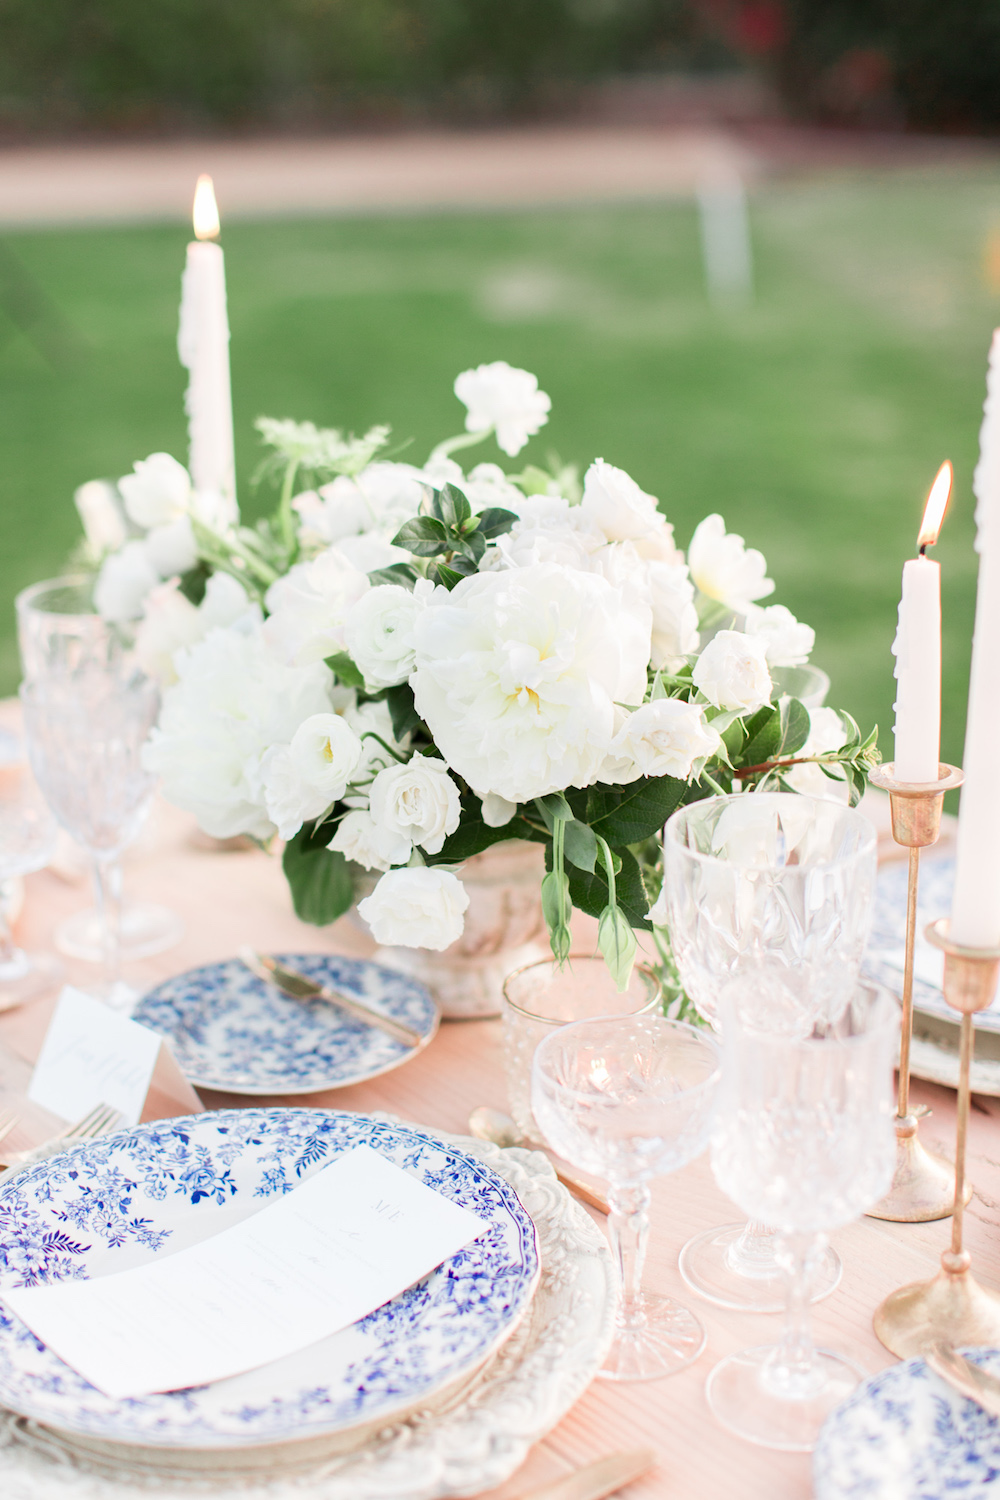 Blue chinoiserie wedding place setting | Rancho Valencia Weddings | Rancho Santa Fe | Compass Floral | Wedding Florist in San Diego and Southern California | Cavin Elizabeth Photography